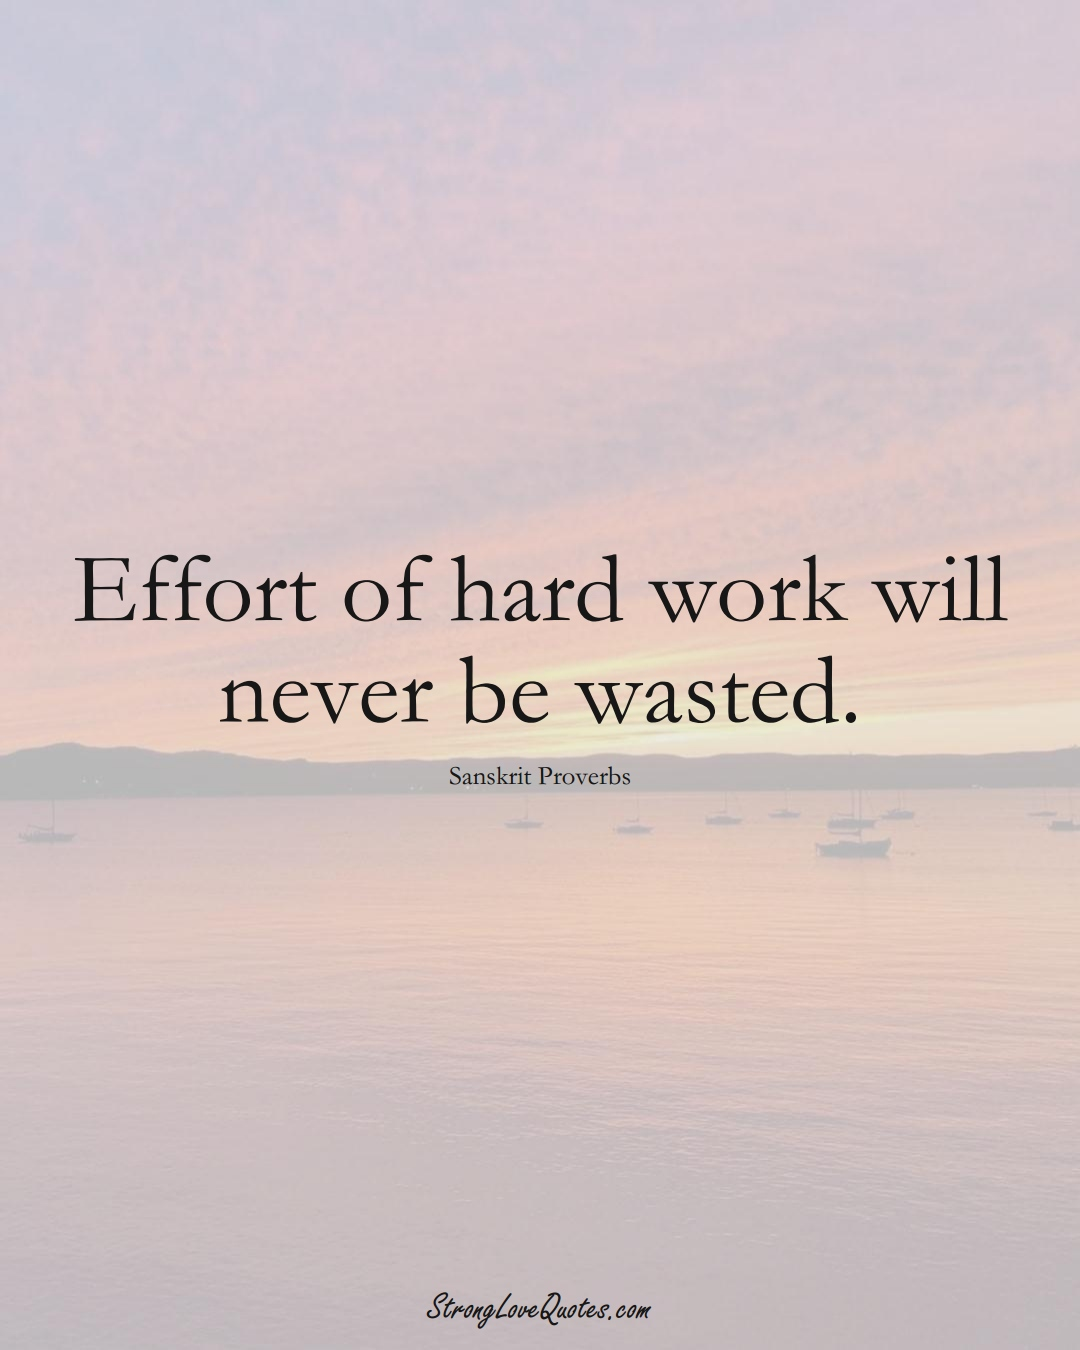 Effort of hard work will never be wasted. (Sanskrit Sayings);  #aVarietyofCulturesSayings